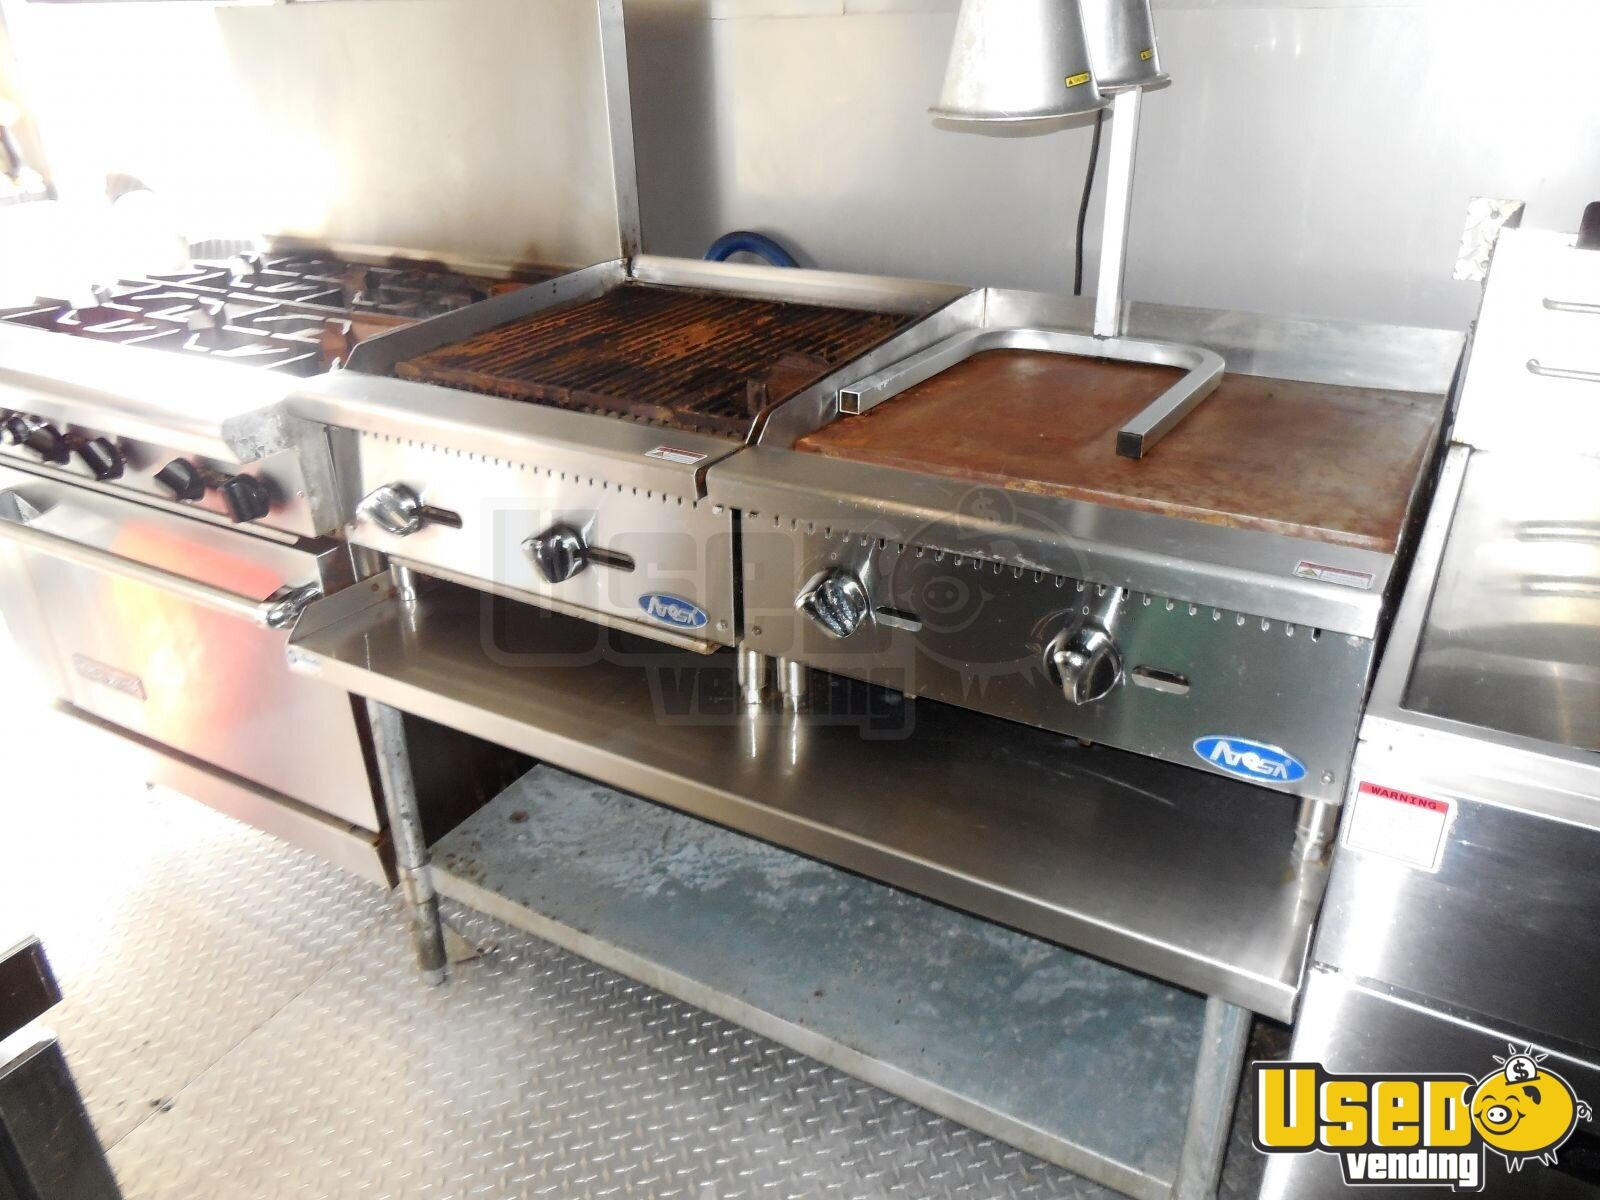 2017 Custome Kitchen Food Trailer Diamond Plated Aluminum Flooring Florida for Sale - 8